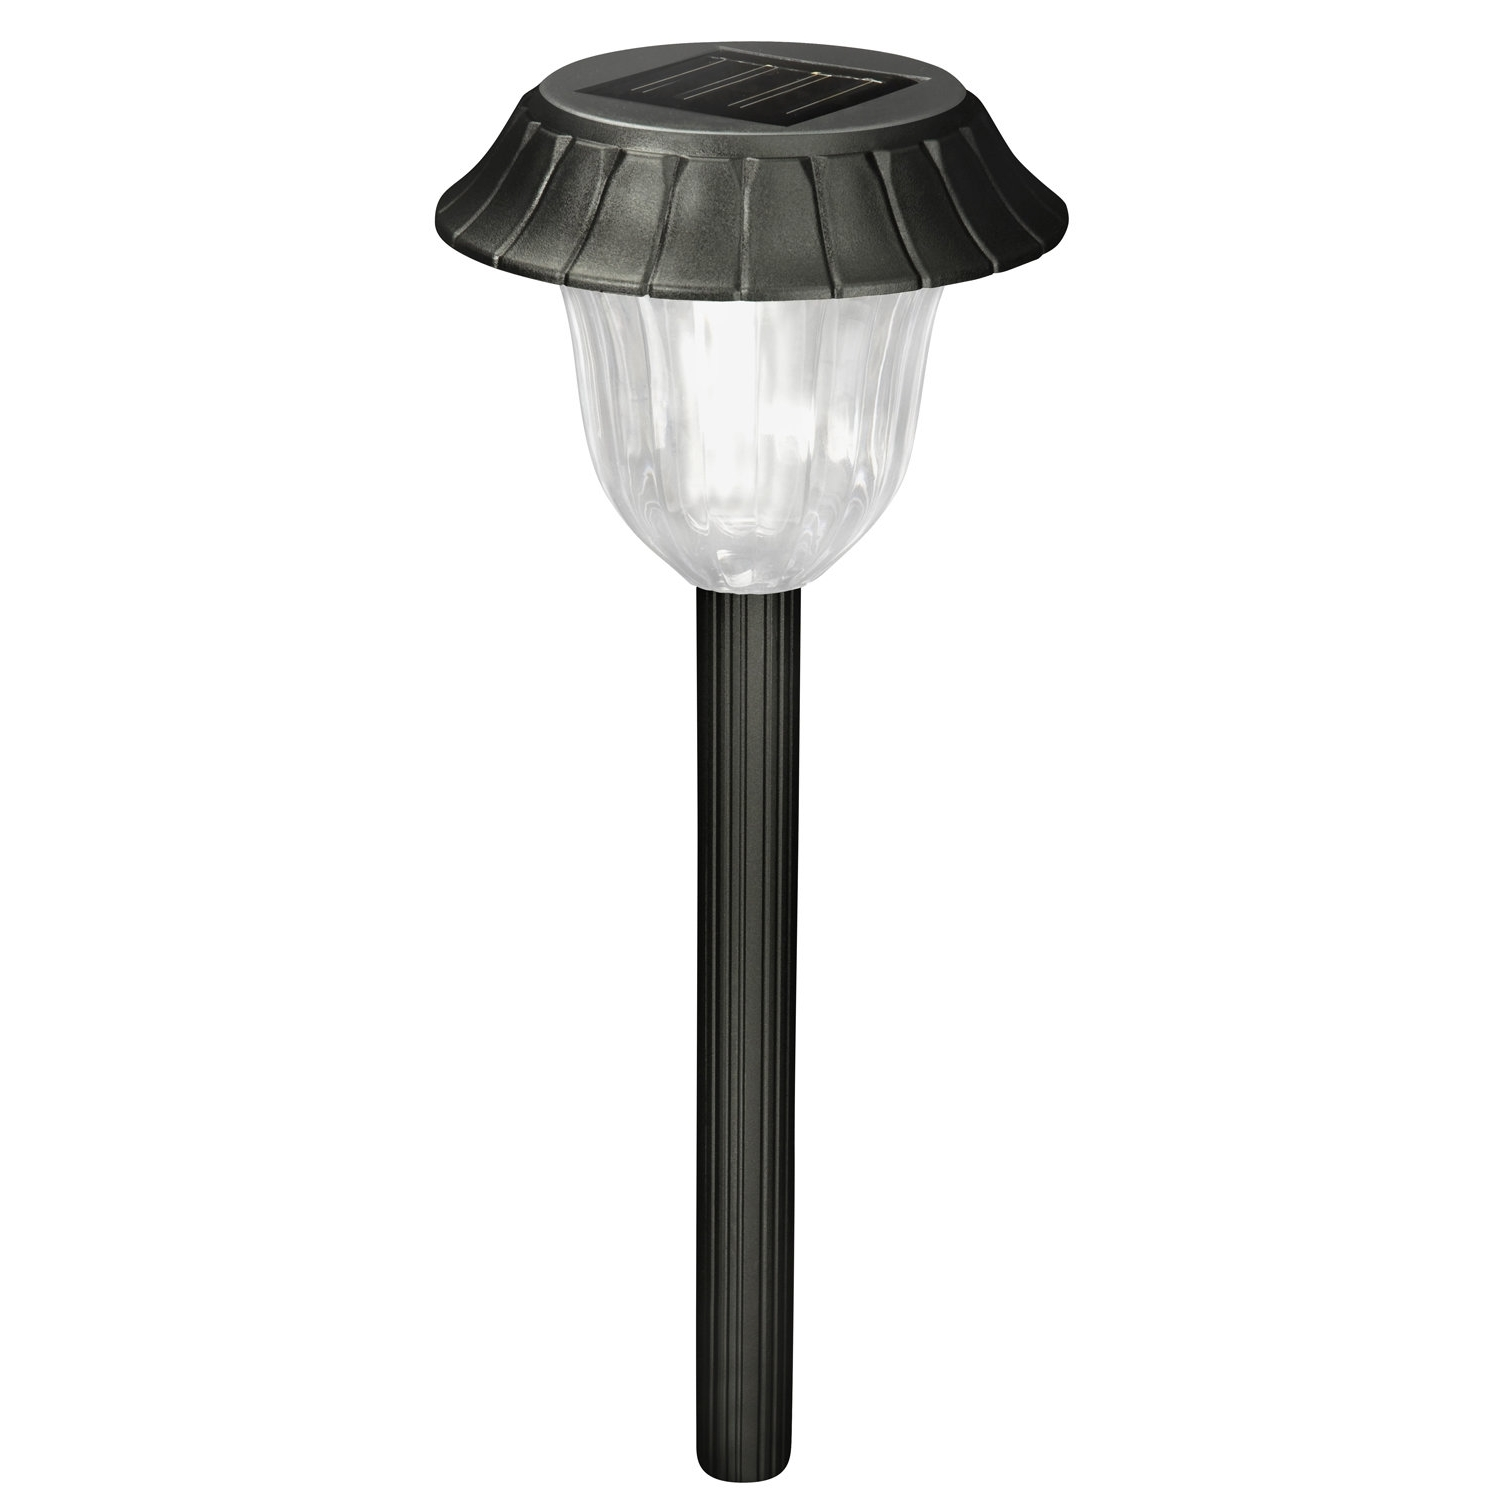 Wayfair For Most Recent Wayfair Landscape Lighting For Mini Garden (View 12 of 20)